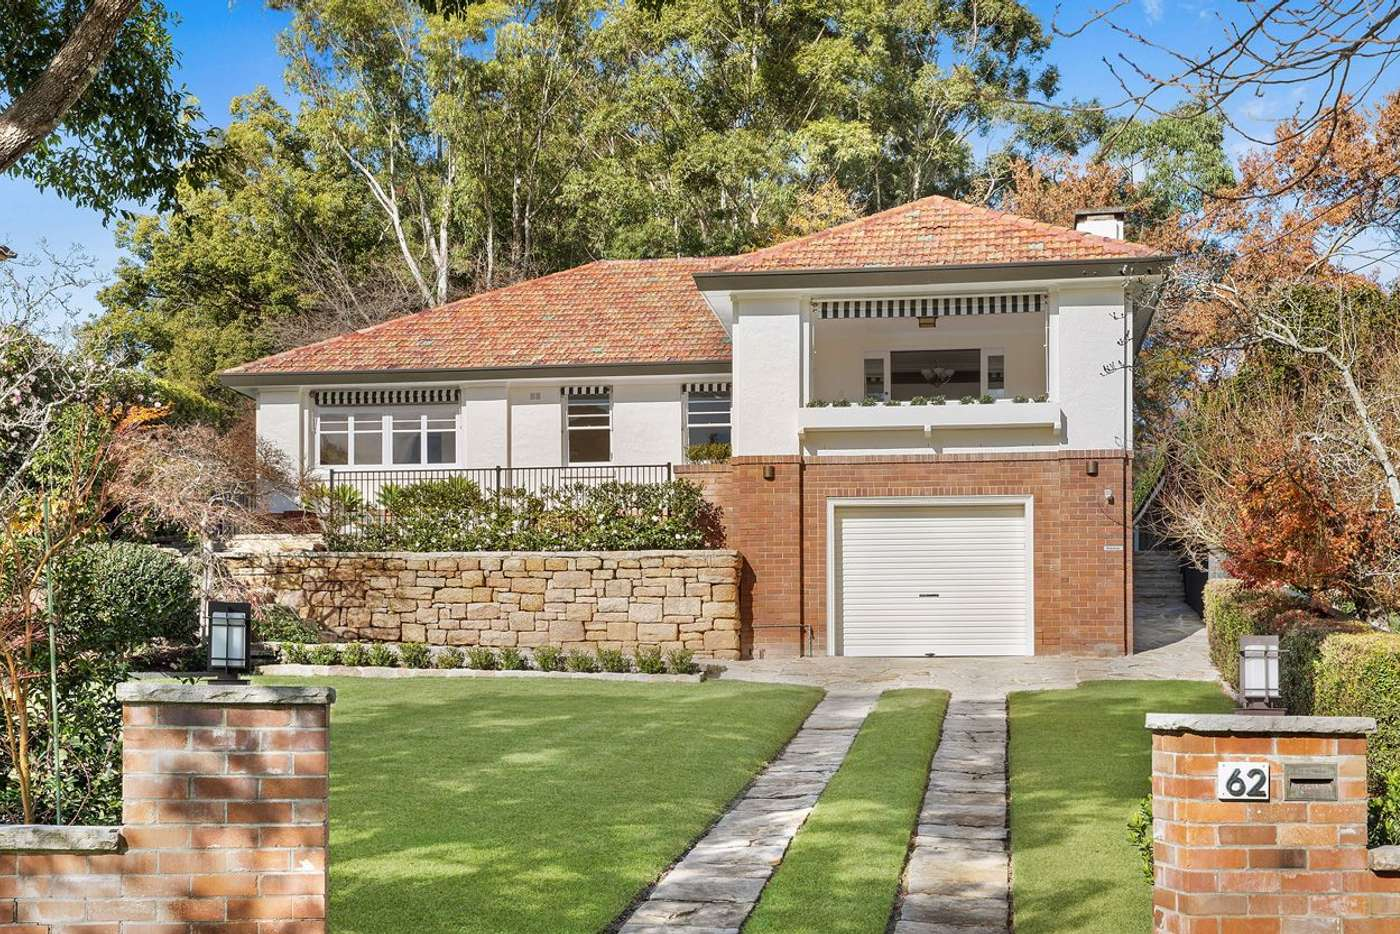 Main view of Homely house listing, 62 Bushlands Avenue, Gordon NSW 2072